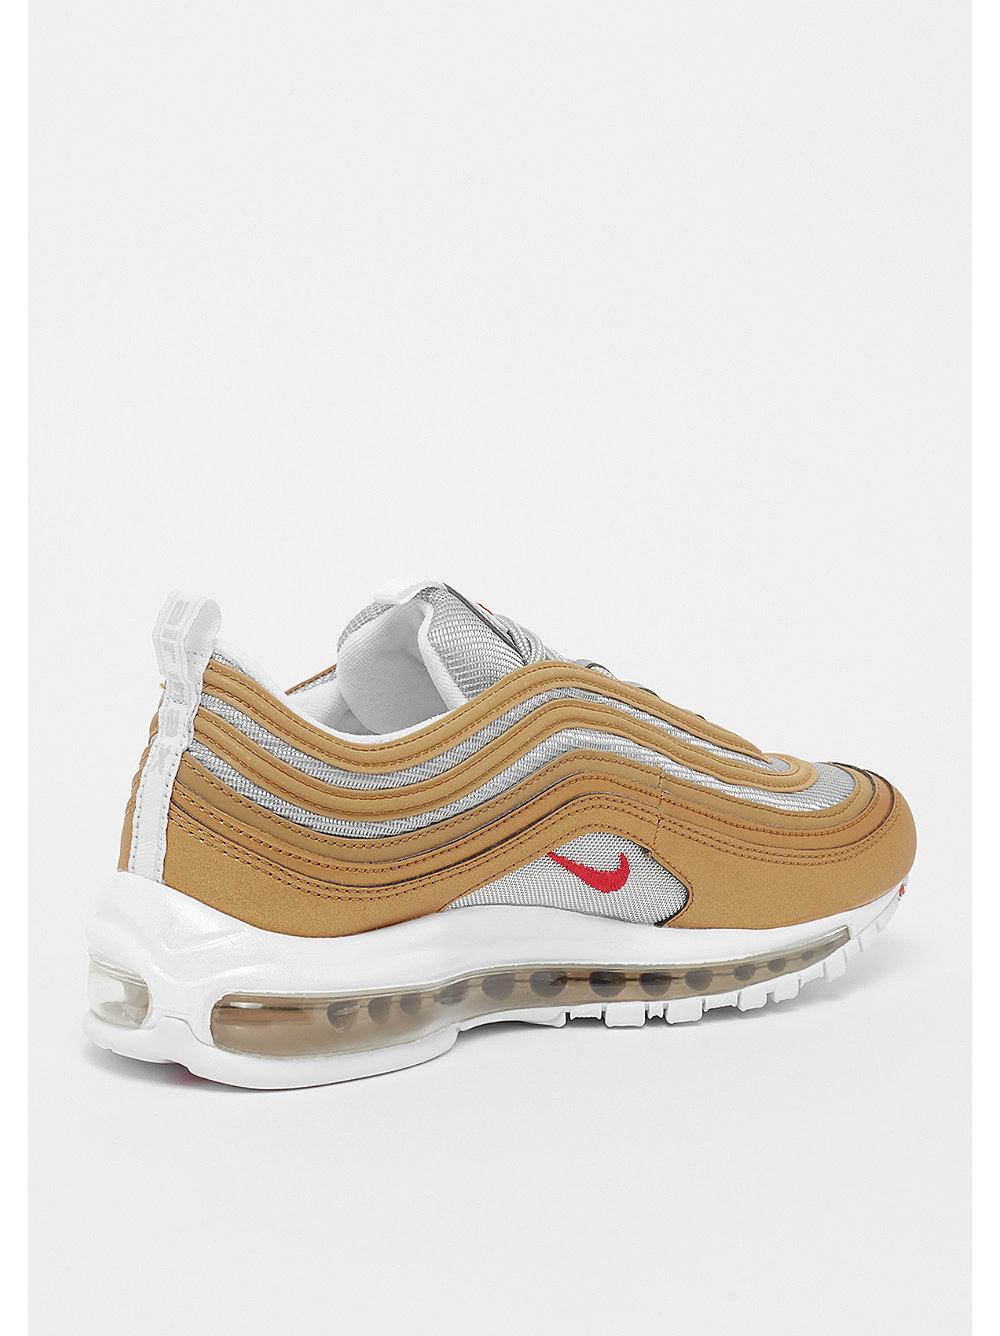 c841f2126f095 NIKE Air Max 97 SSL metallic gold Sneaker bei SNIPES